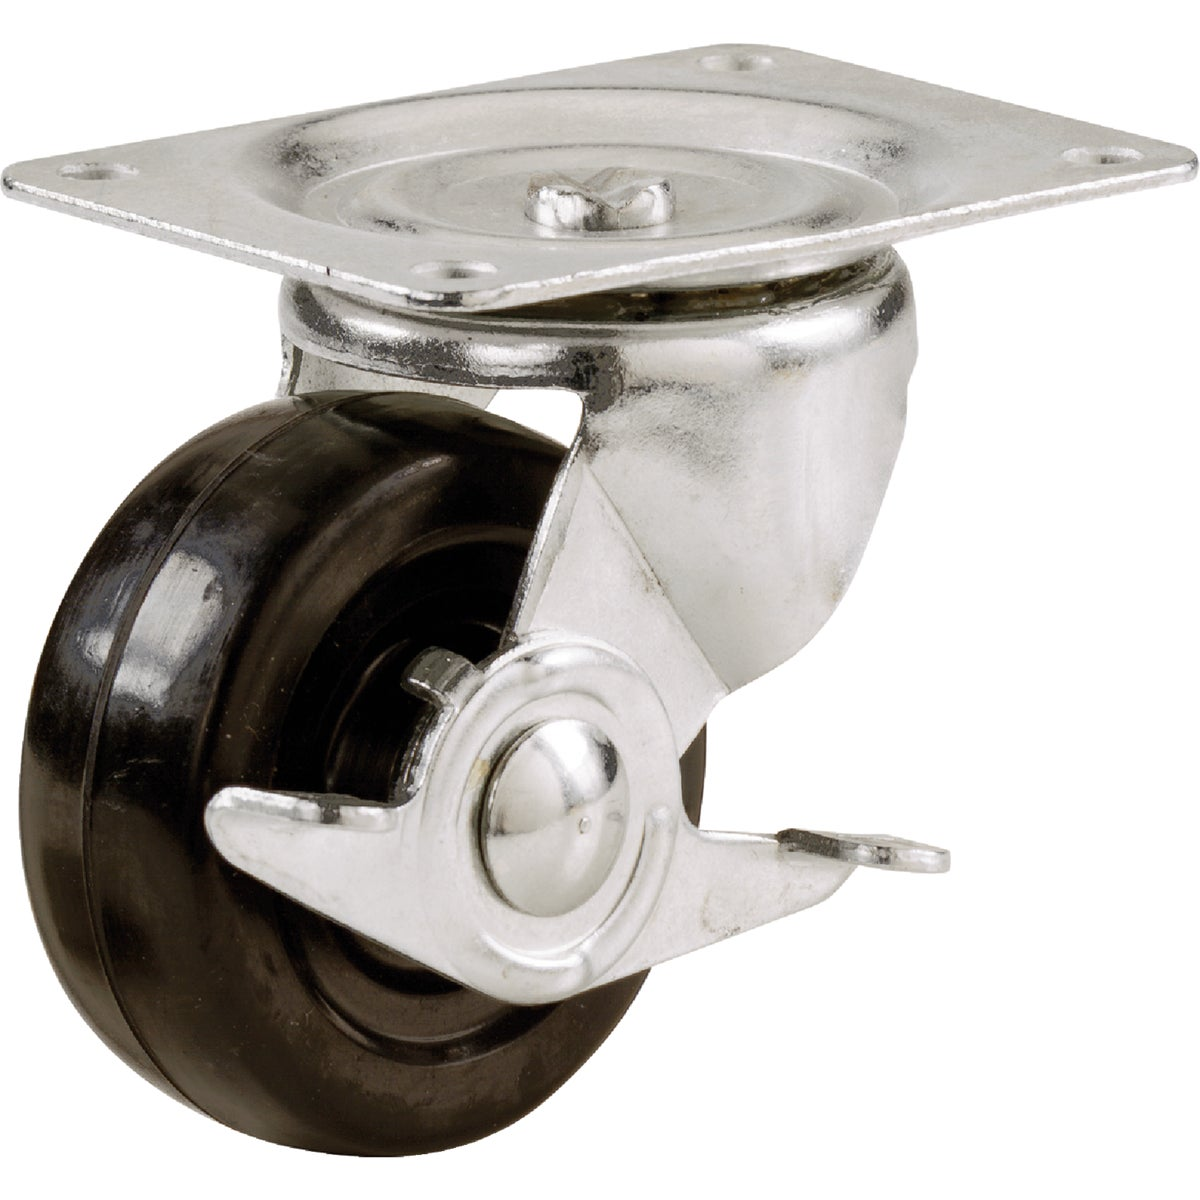 "2"" SP CASTER W/BRAKE - 9509 by Shepherd Hardware"